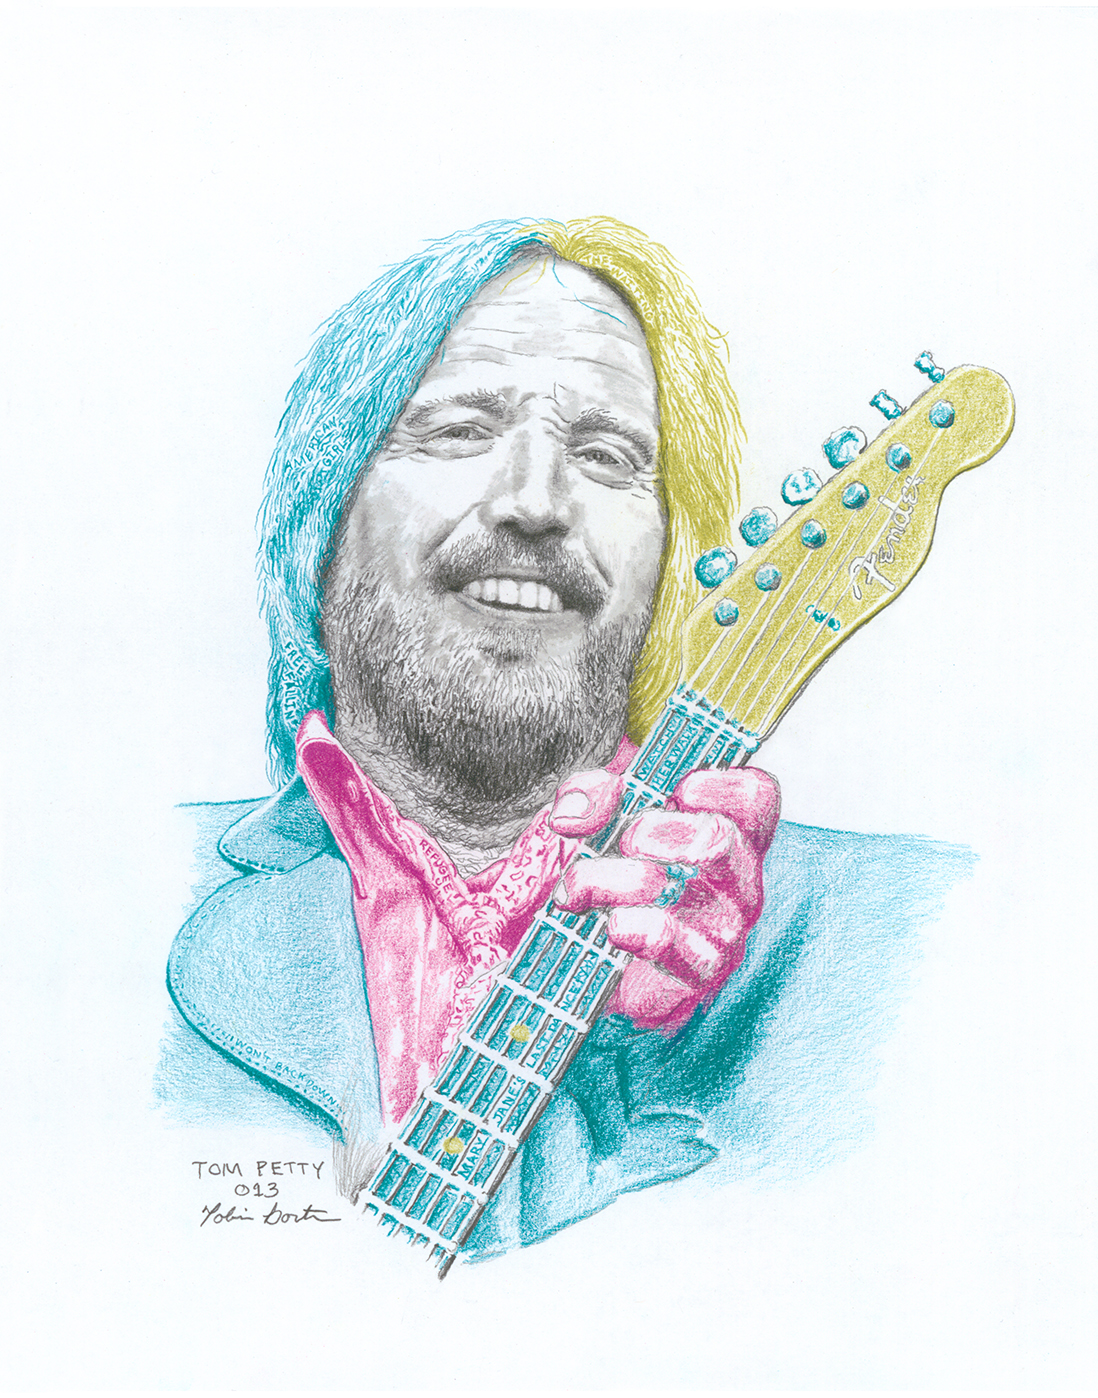 tom petty rgb thumb